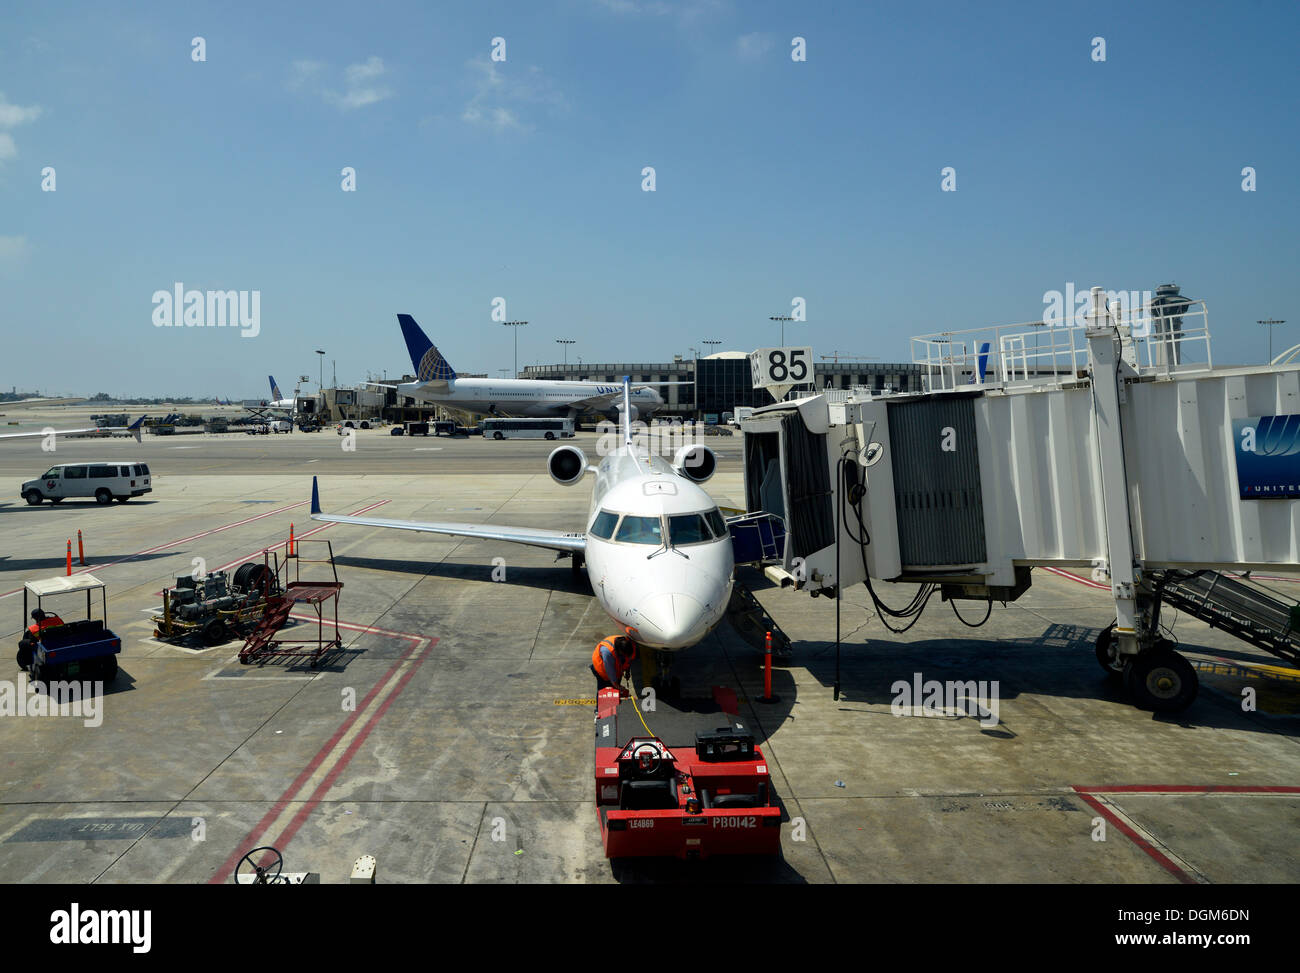 Handling at the LAX Los Angeles International Airport, Terminal 8, Los Angeles, California, United States of America, - Stock Image